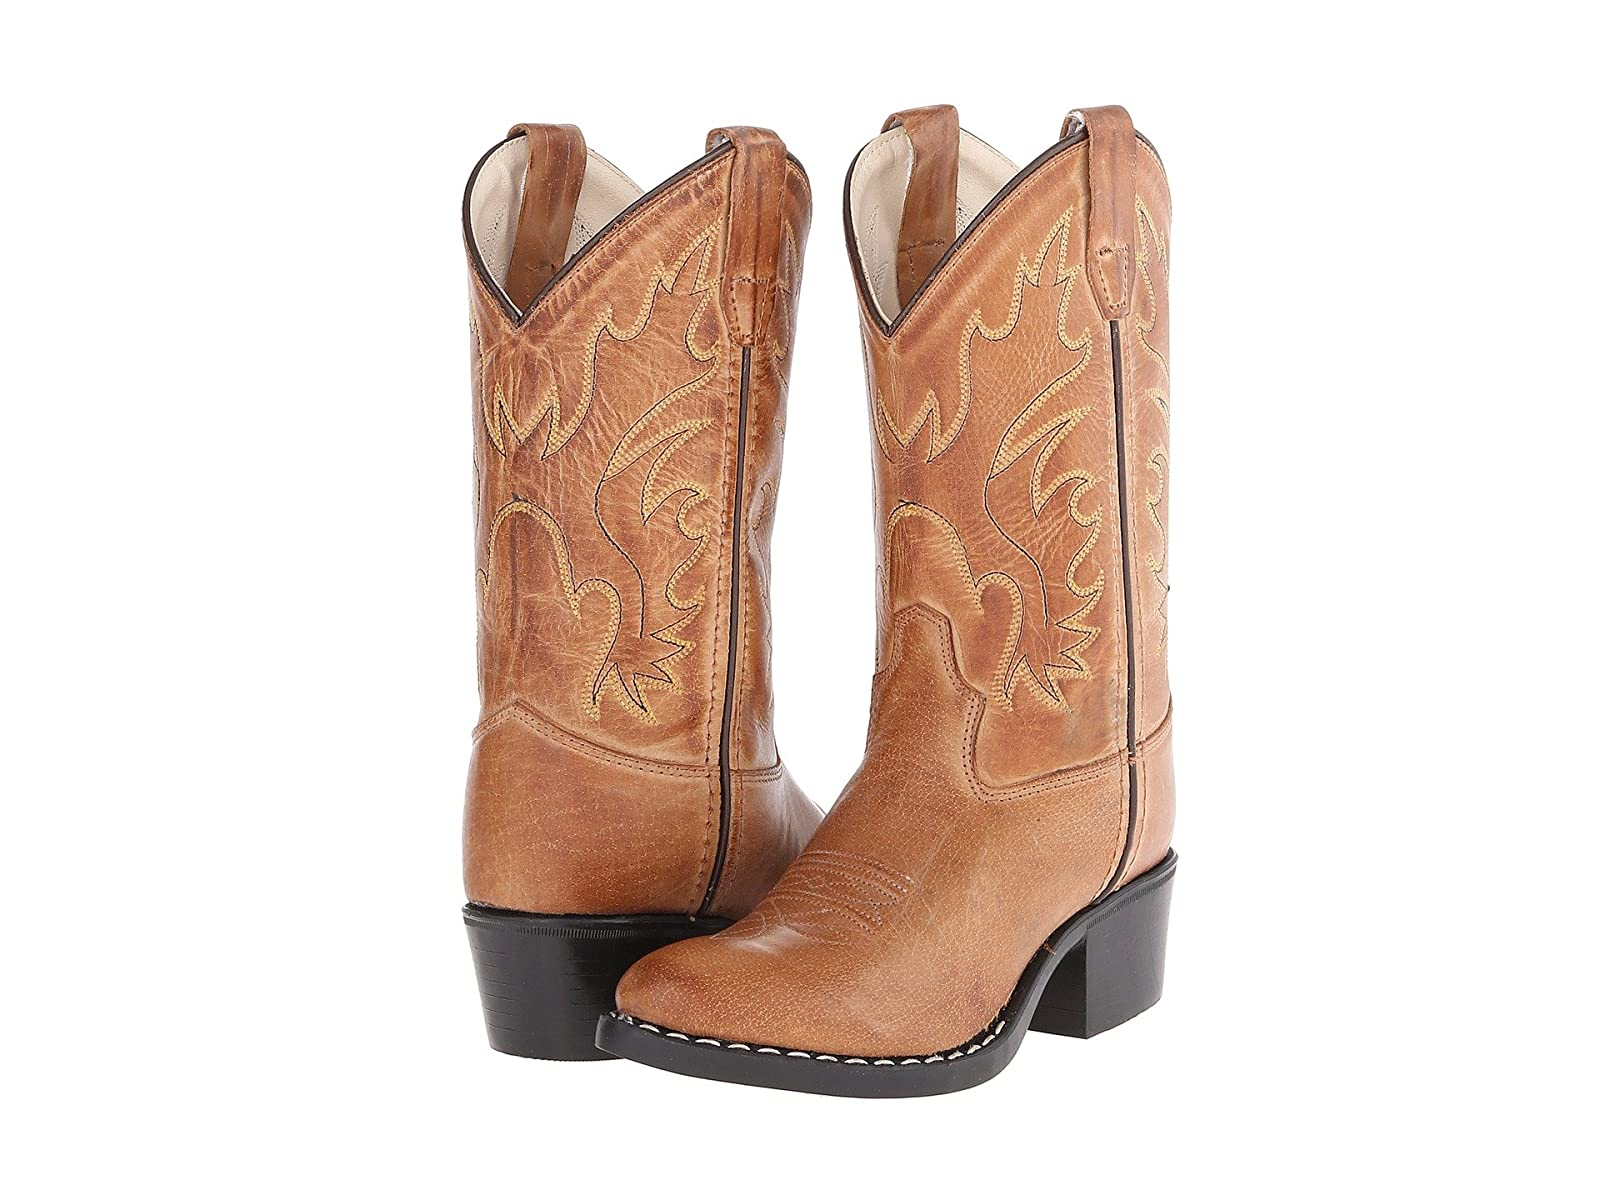 Old West Kids Boots J Toe Western Boot (Toddler/Little Kid)Economical and quality shoes